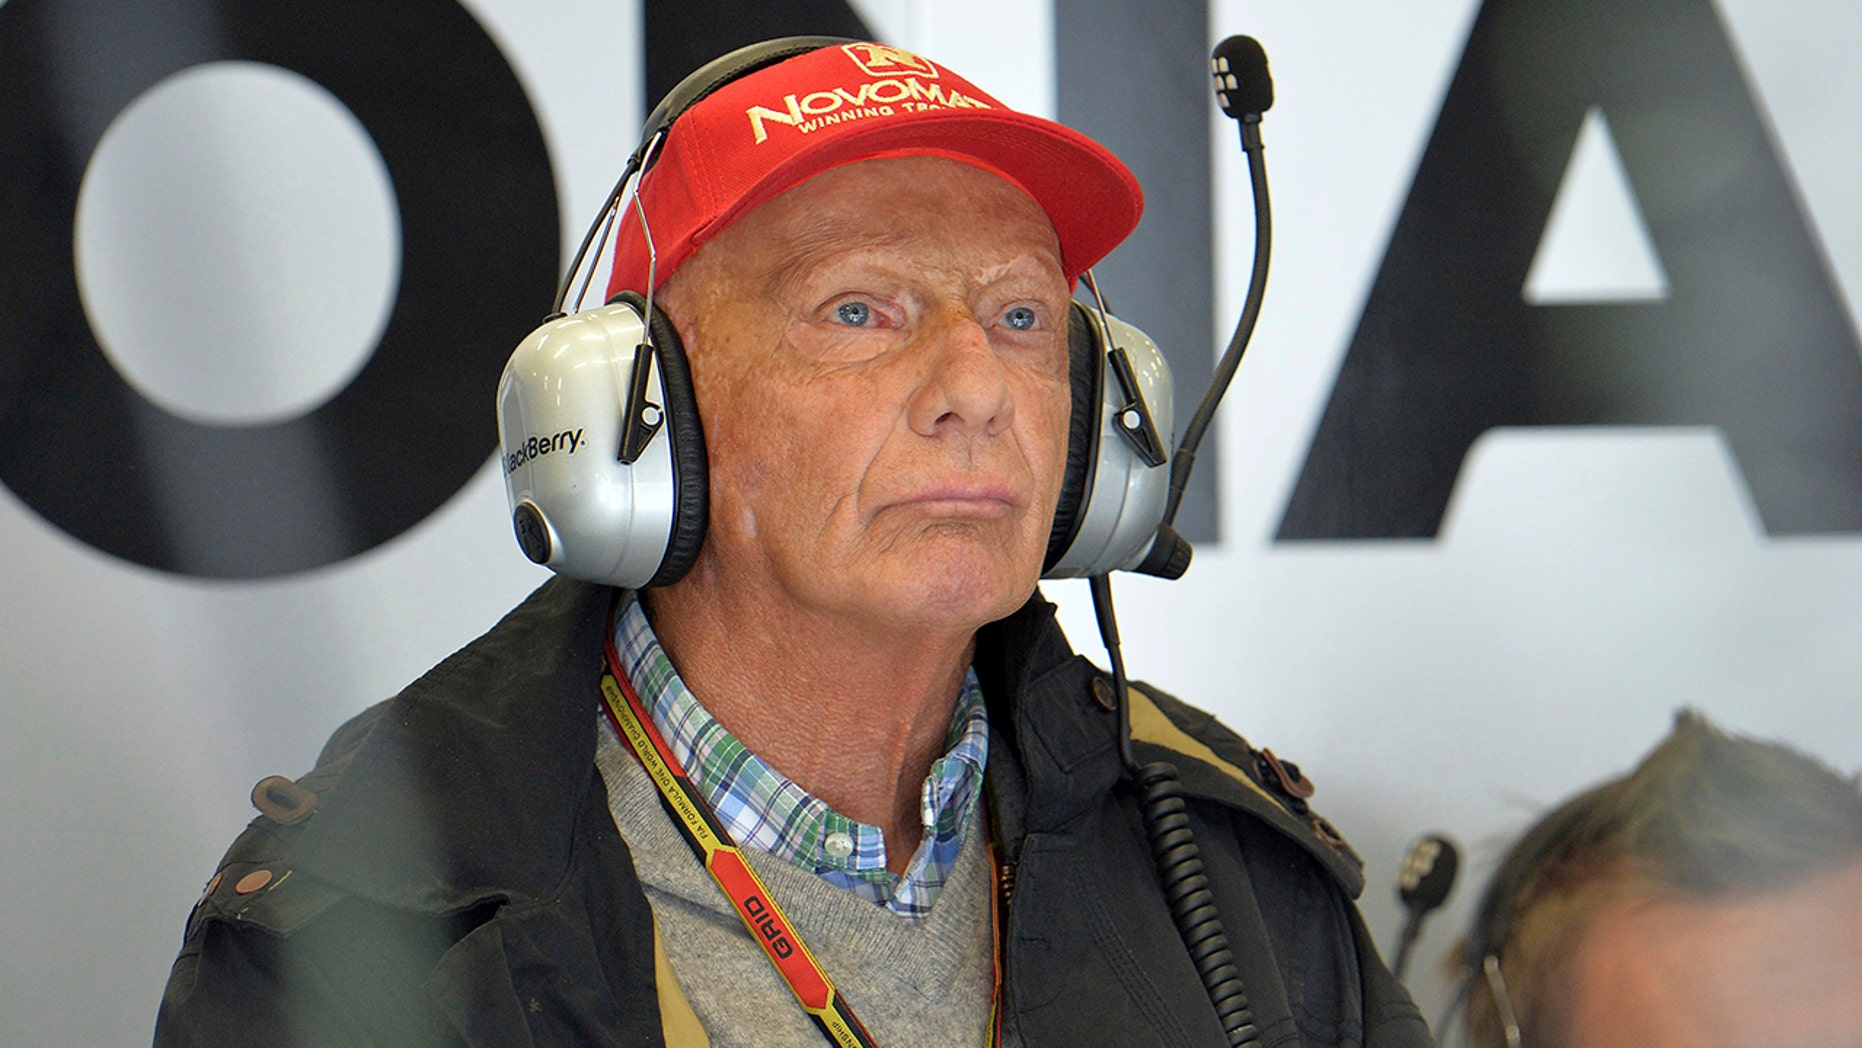 "FILE - In this Friday, June 20, 2014 photo former three-time F1 World champion Niki Lauda from Austria attends the second training session at the race track in Spielberg, Austria. Three-time Formula One world champion Niki Lauda has undergone a lung transplant. The Vienna General Hospital says the operation was performed Thursday because of a ""serious lung illness."" It didn't give more specific details in a brief statement and said the 69-year-old Austrian's family would make no public comment (AP Photo/Kerstin Joensson, file)"